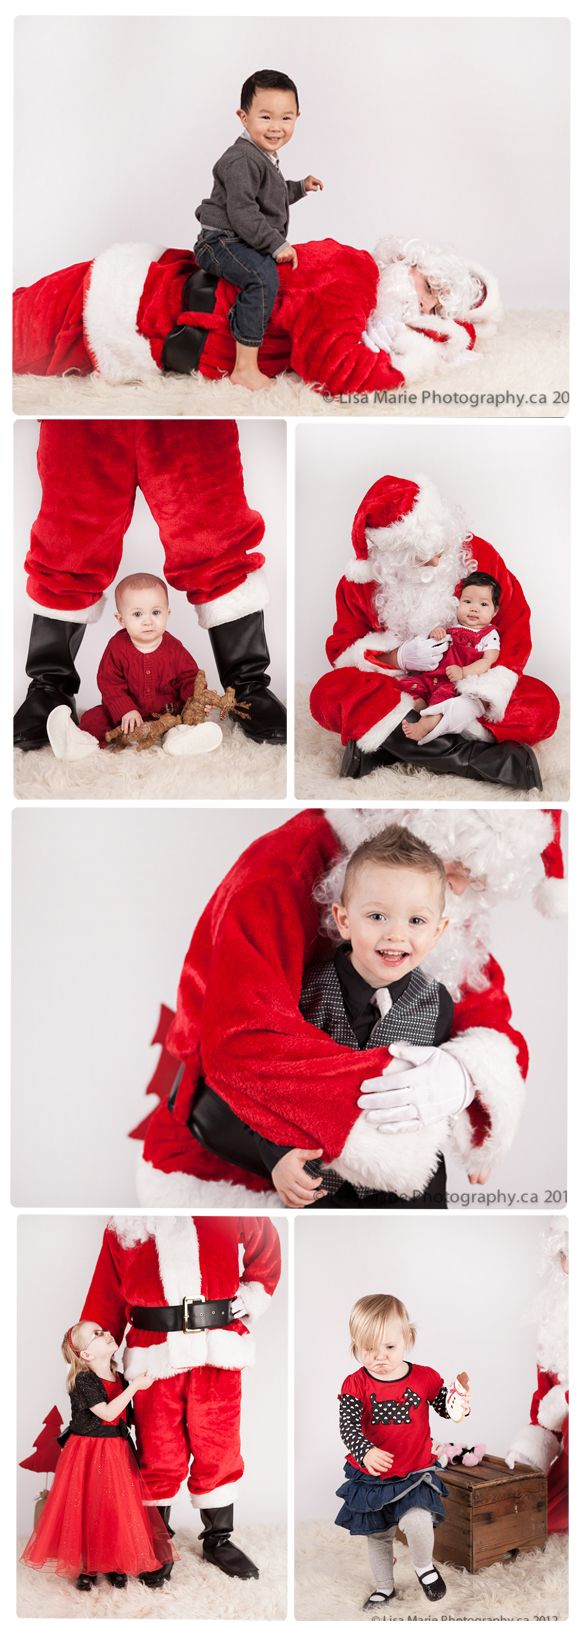 Santa Mini Sessions | Santa Mini Sessions AND Christmas Portraits! 2013 @ Lisa Marie ...